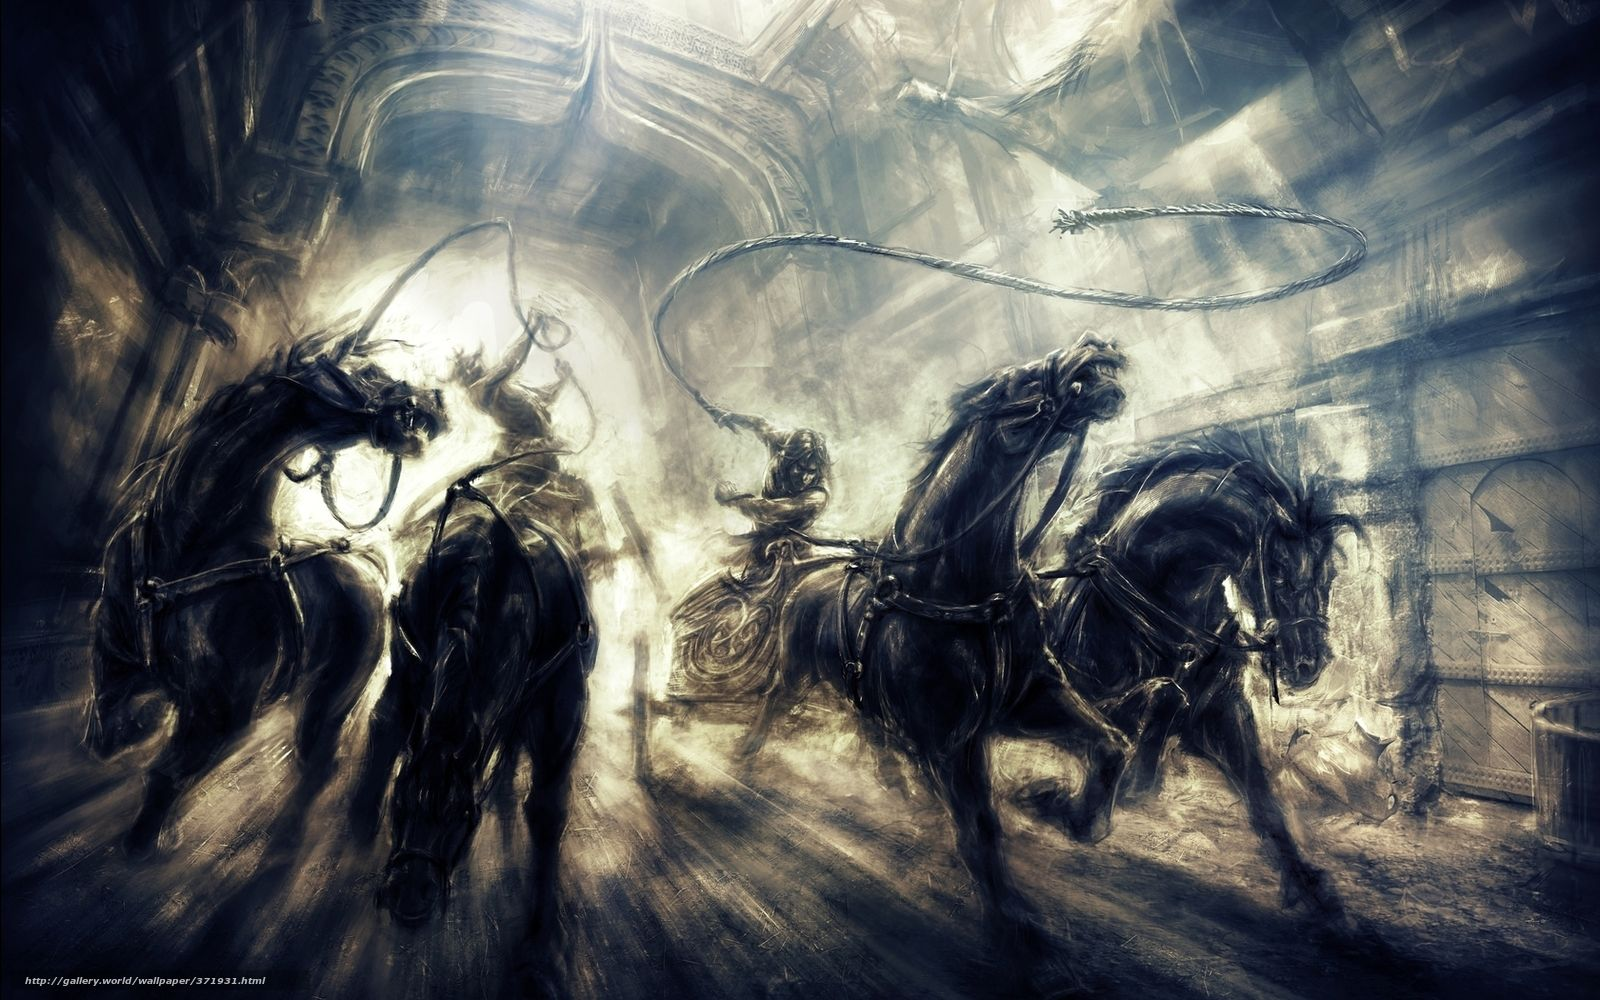 Download Wallpaper Prince Horse Chase Two Thrones Free Desktop Prince Of Persia Art Evil Art Fantasy Creatures Monsters